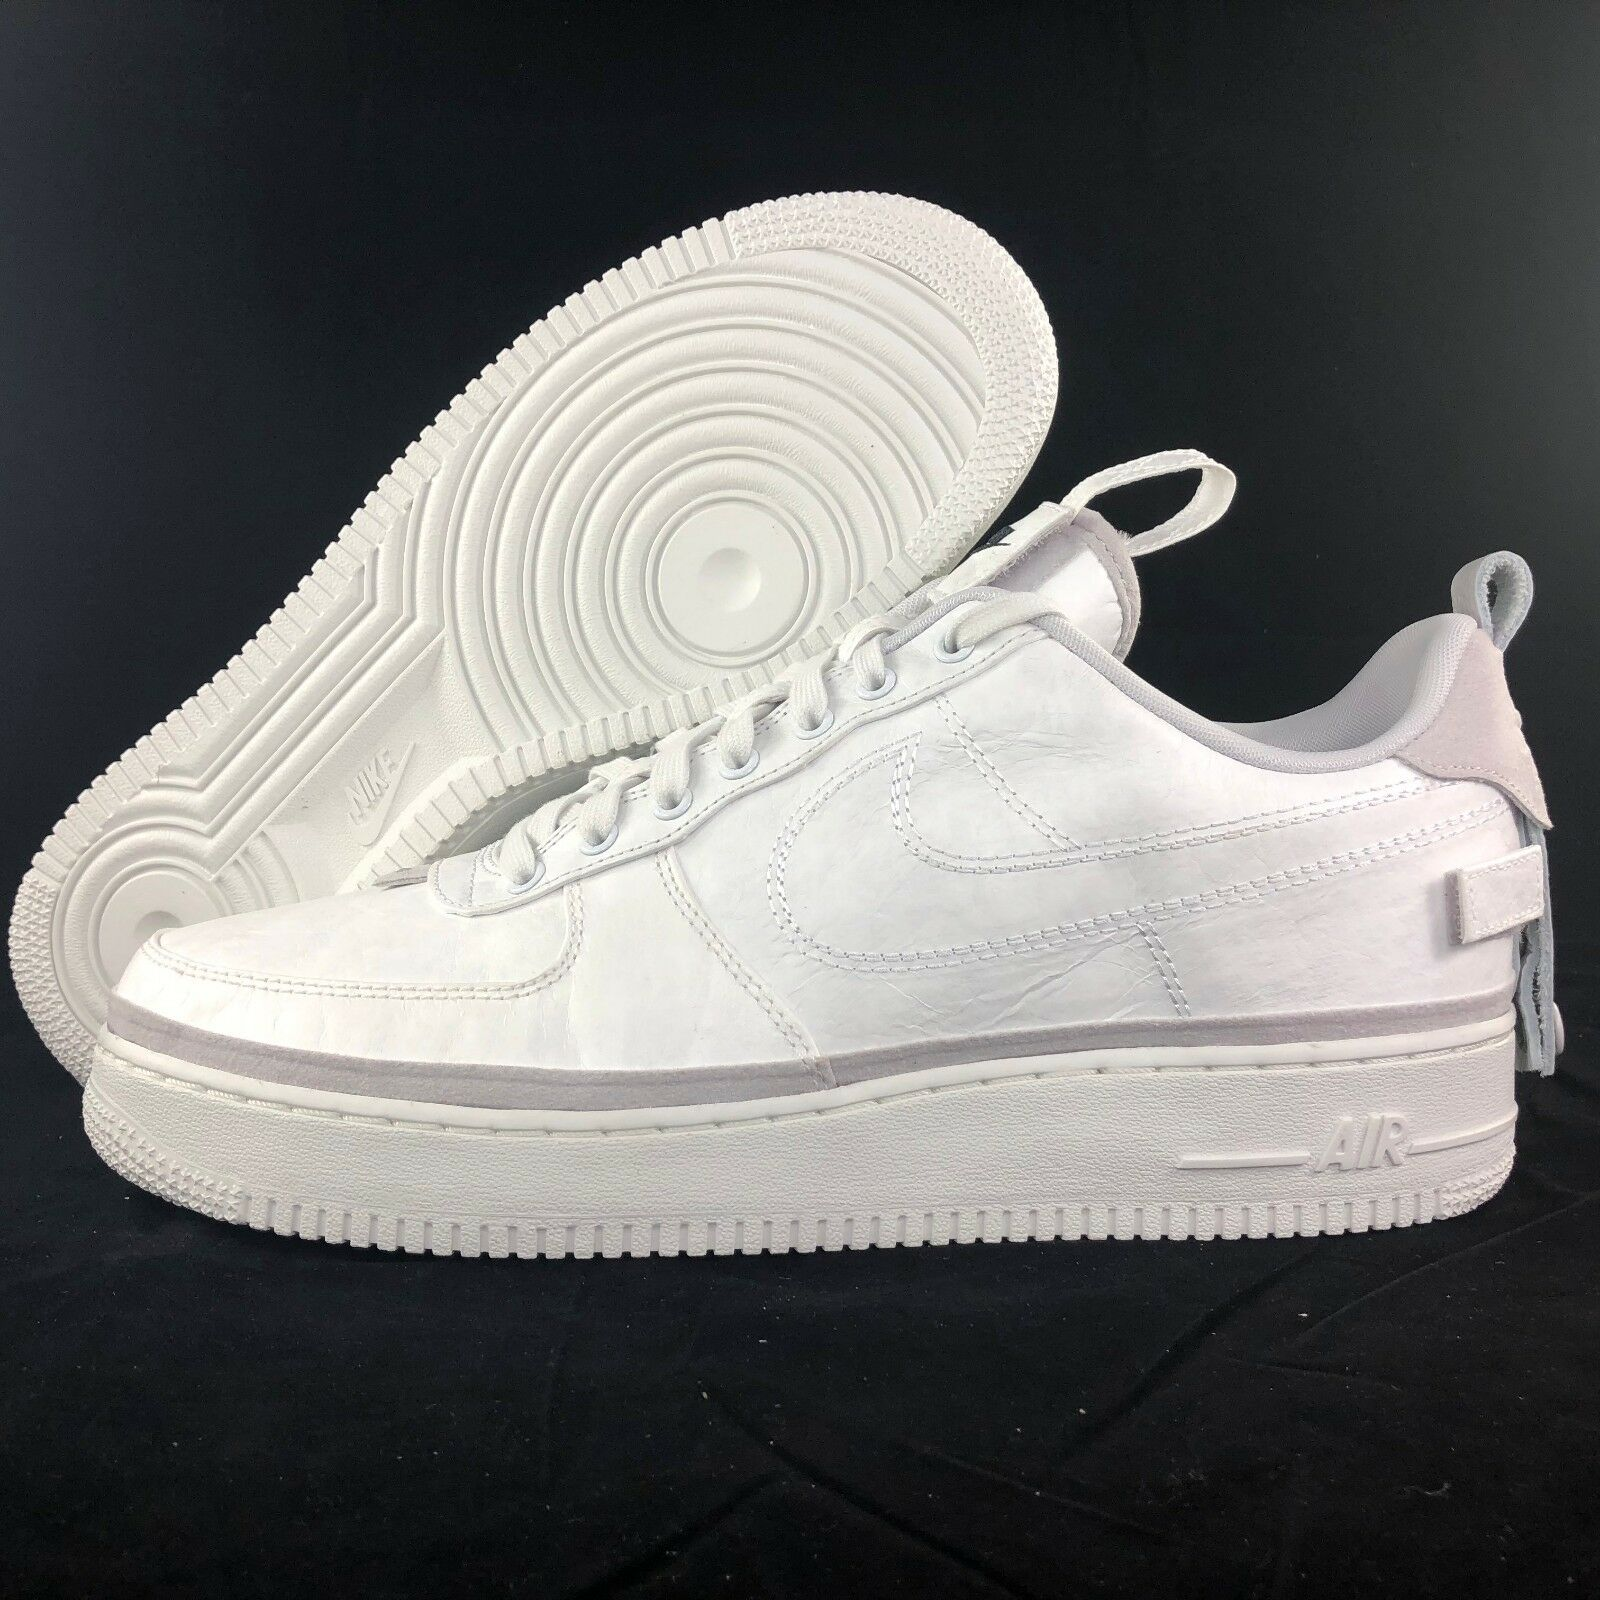 Nike Air Force 1 '07 AS QS Low 90/10 All Star Grey White AH6767-001 Men's 11-12 Great discount